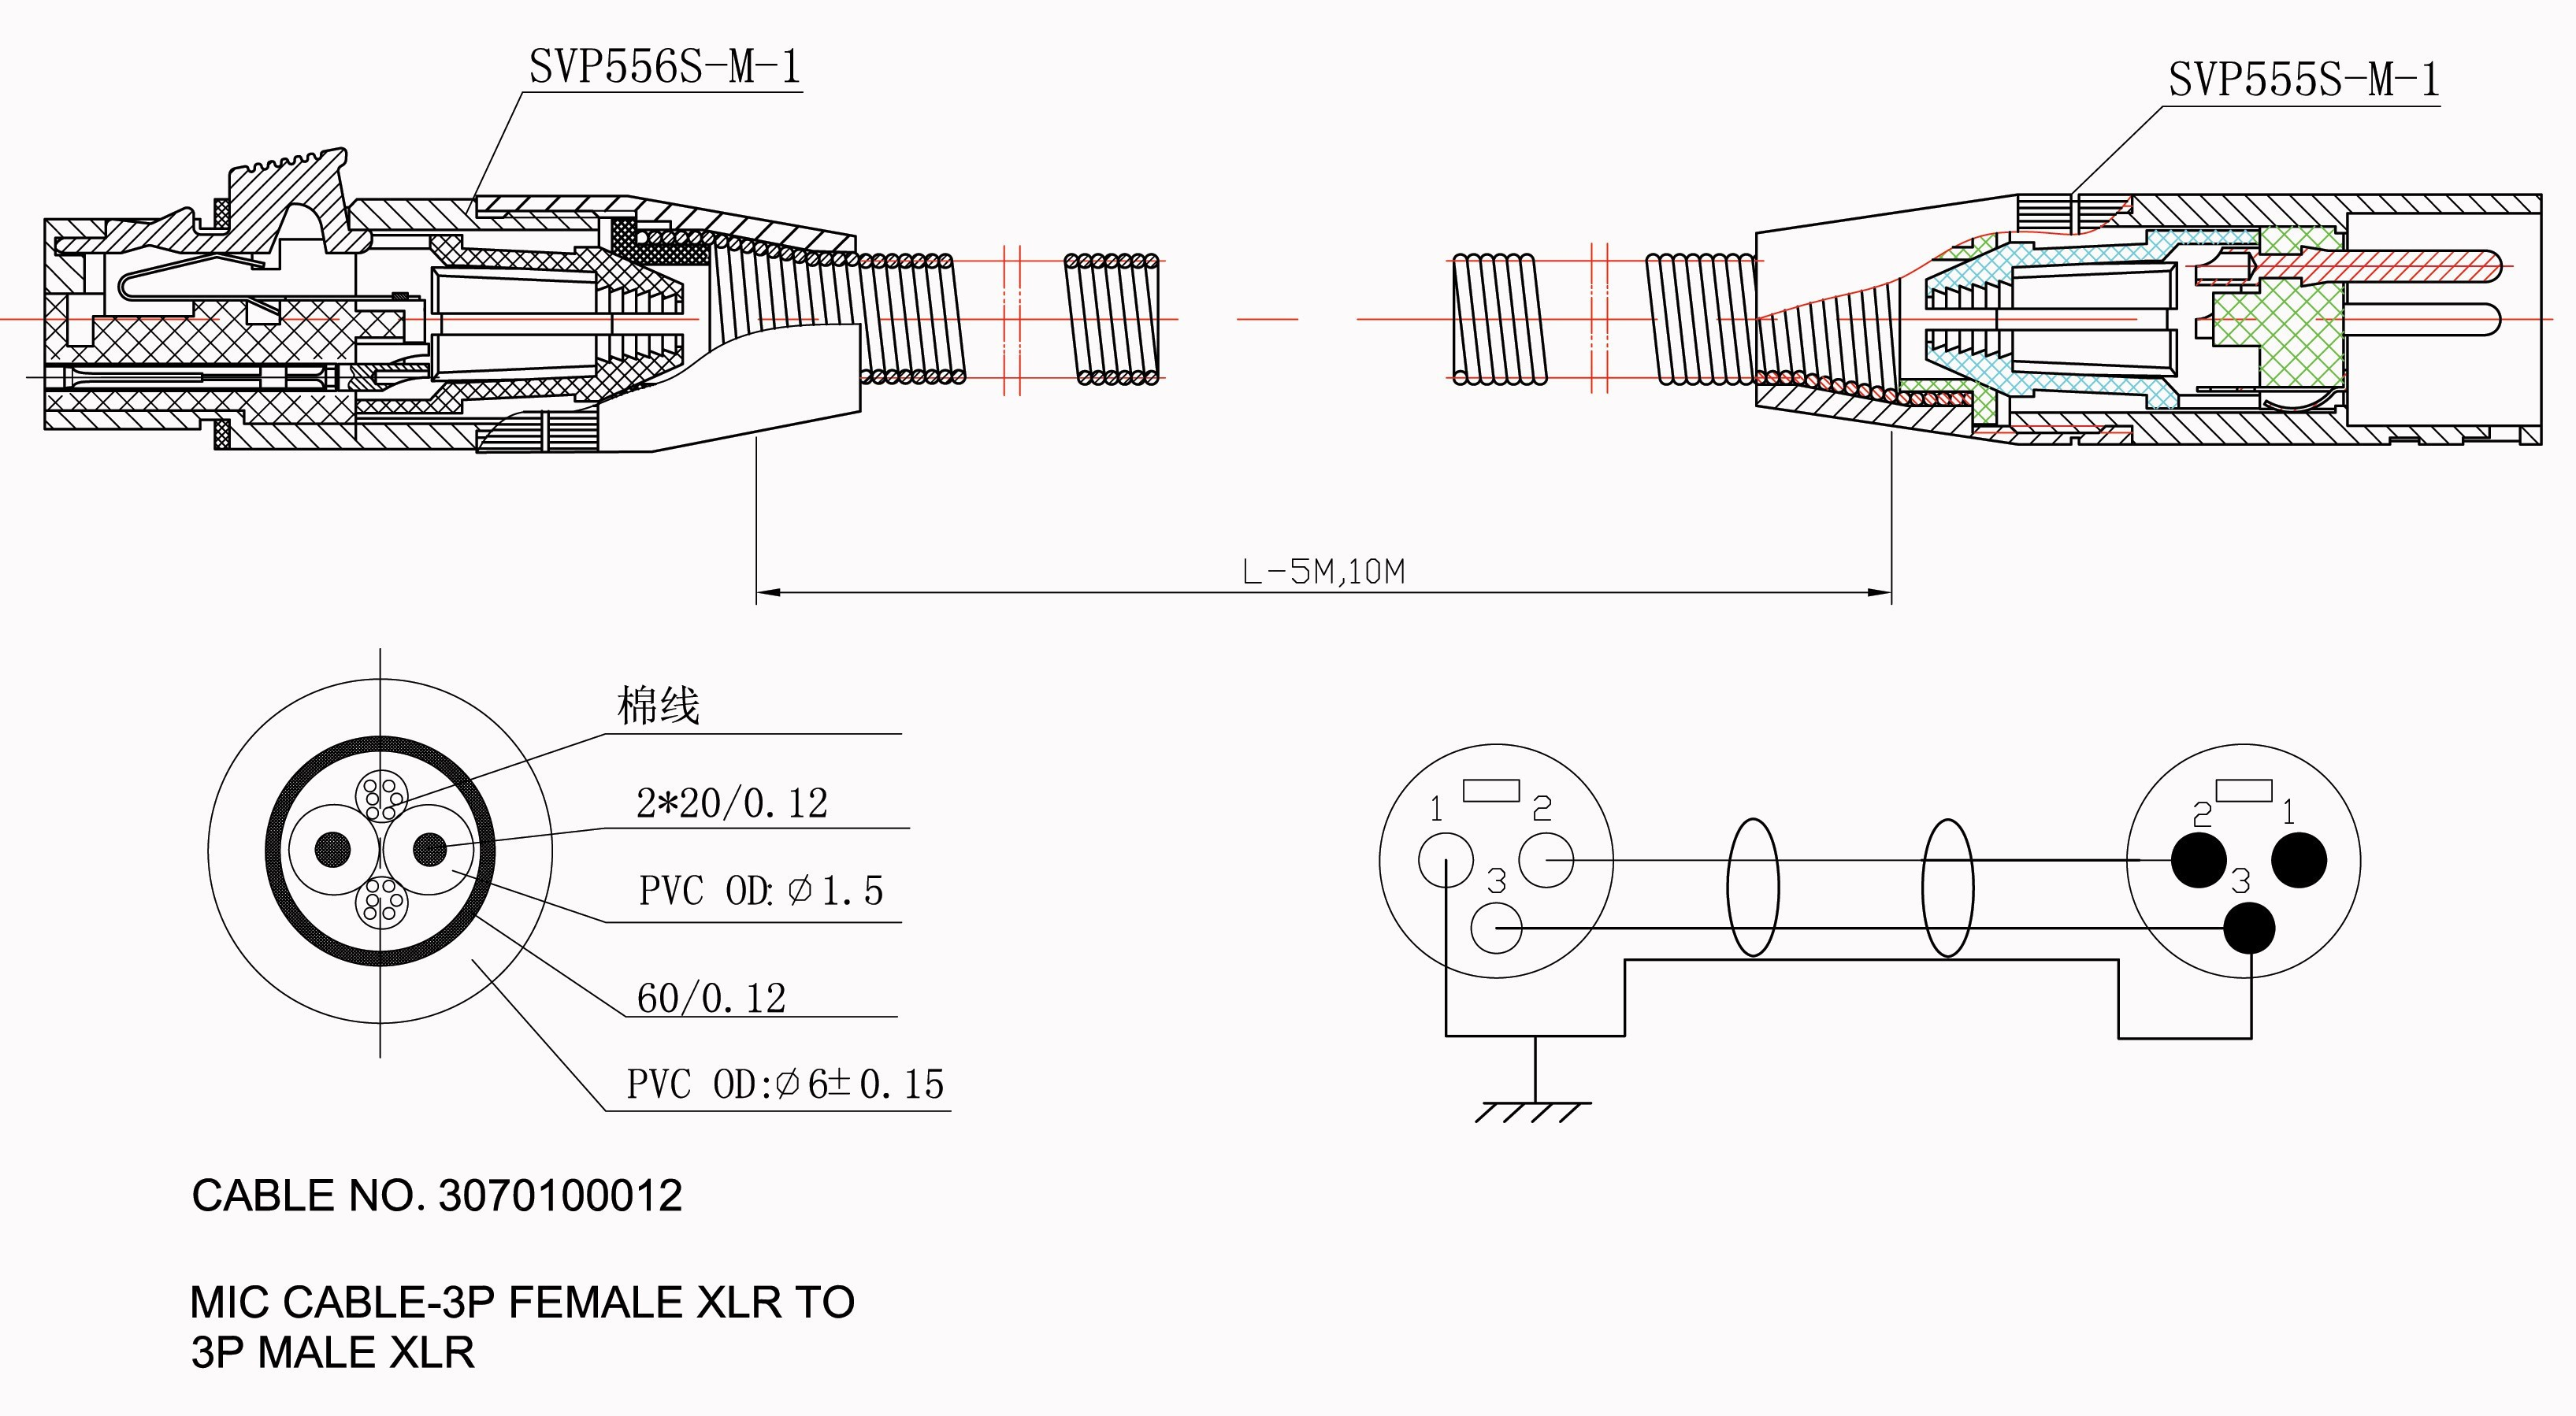 Rv Cable And Satellite Wiring Diagram Inspirational Wiring Diagram For Cat5 Network Cable New Fresh Ethernet Cable